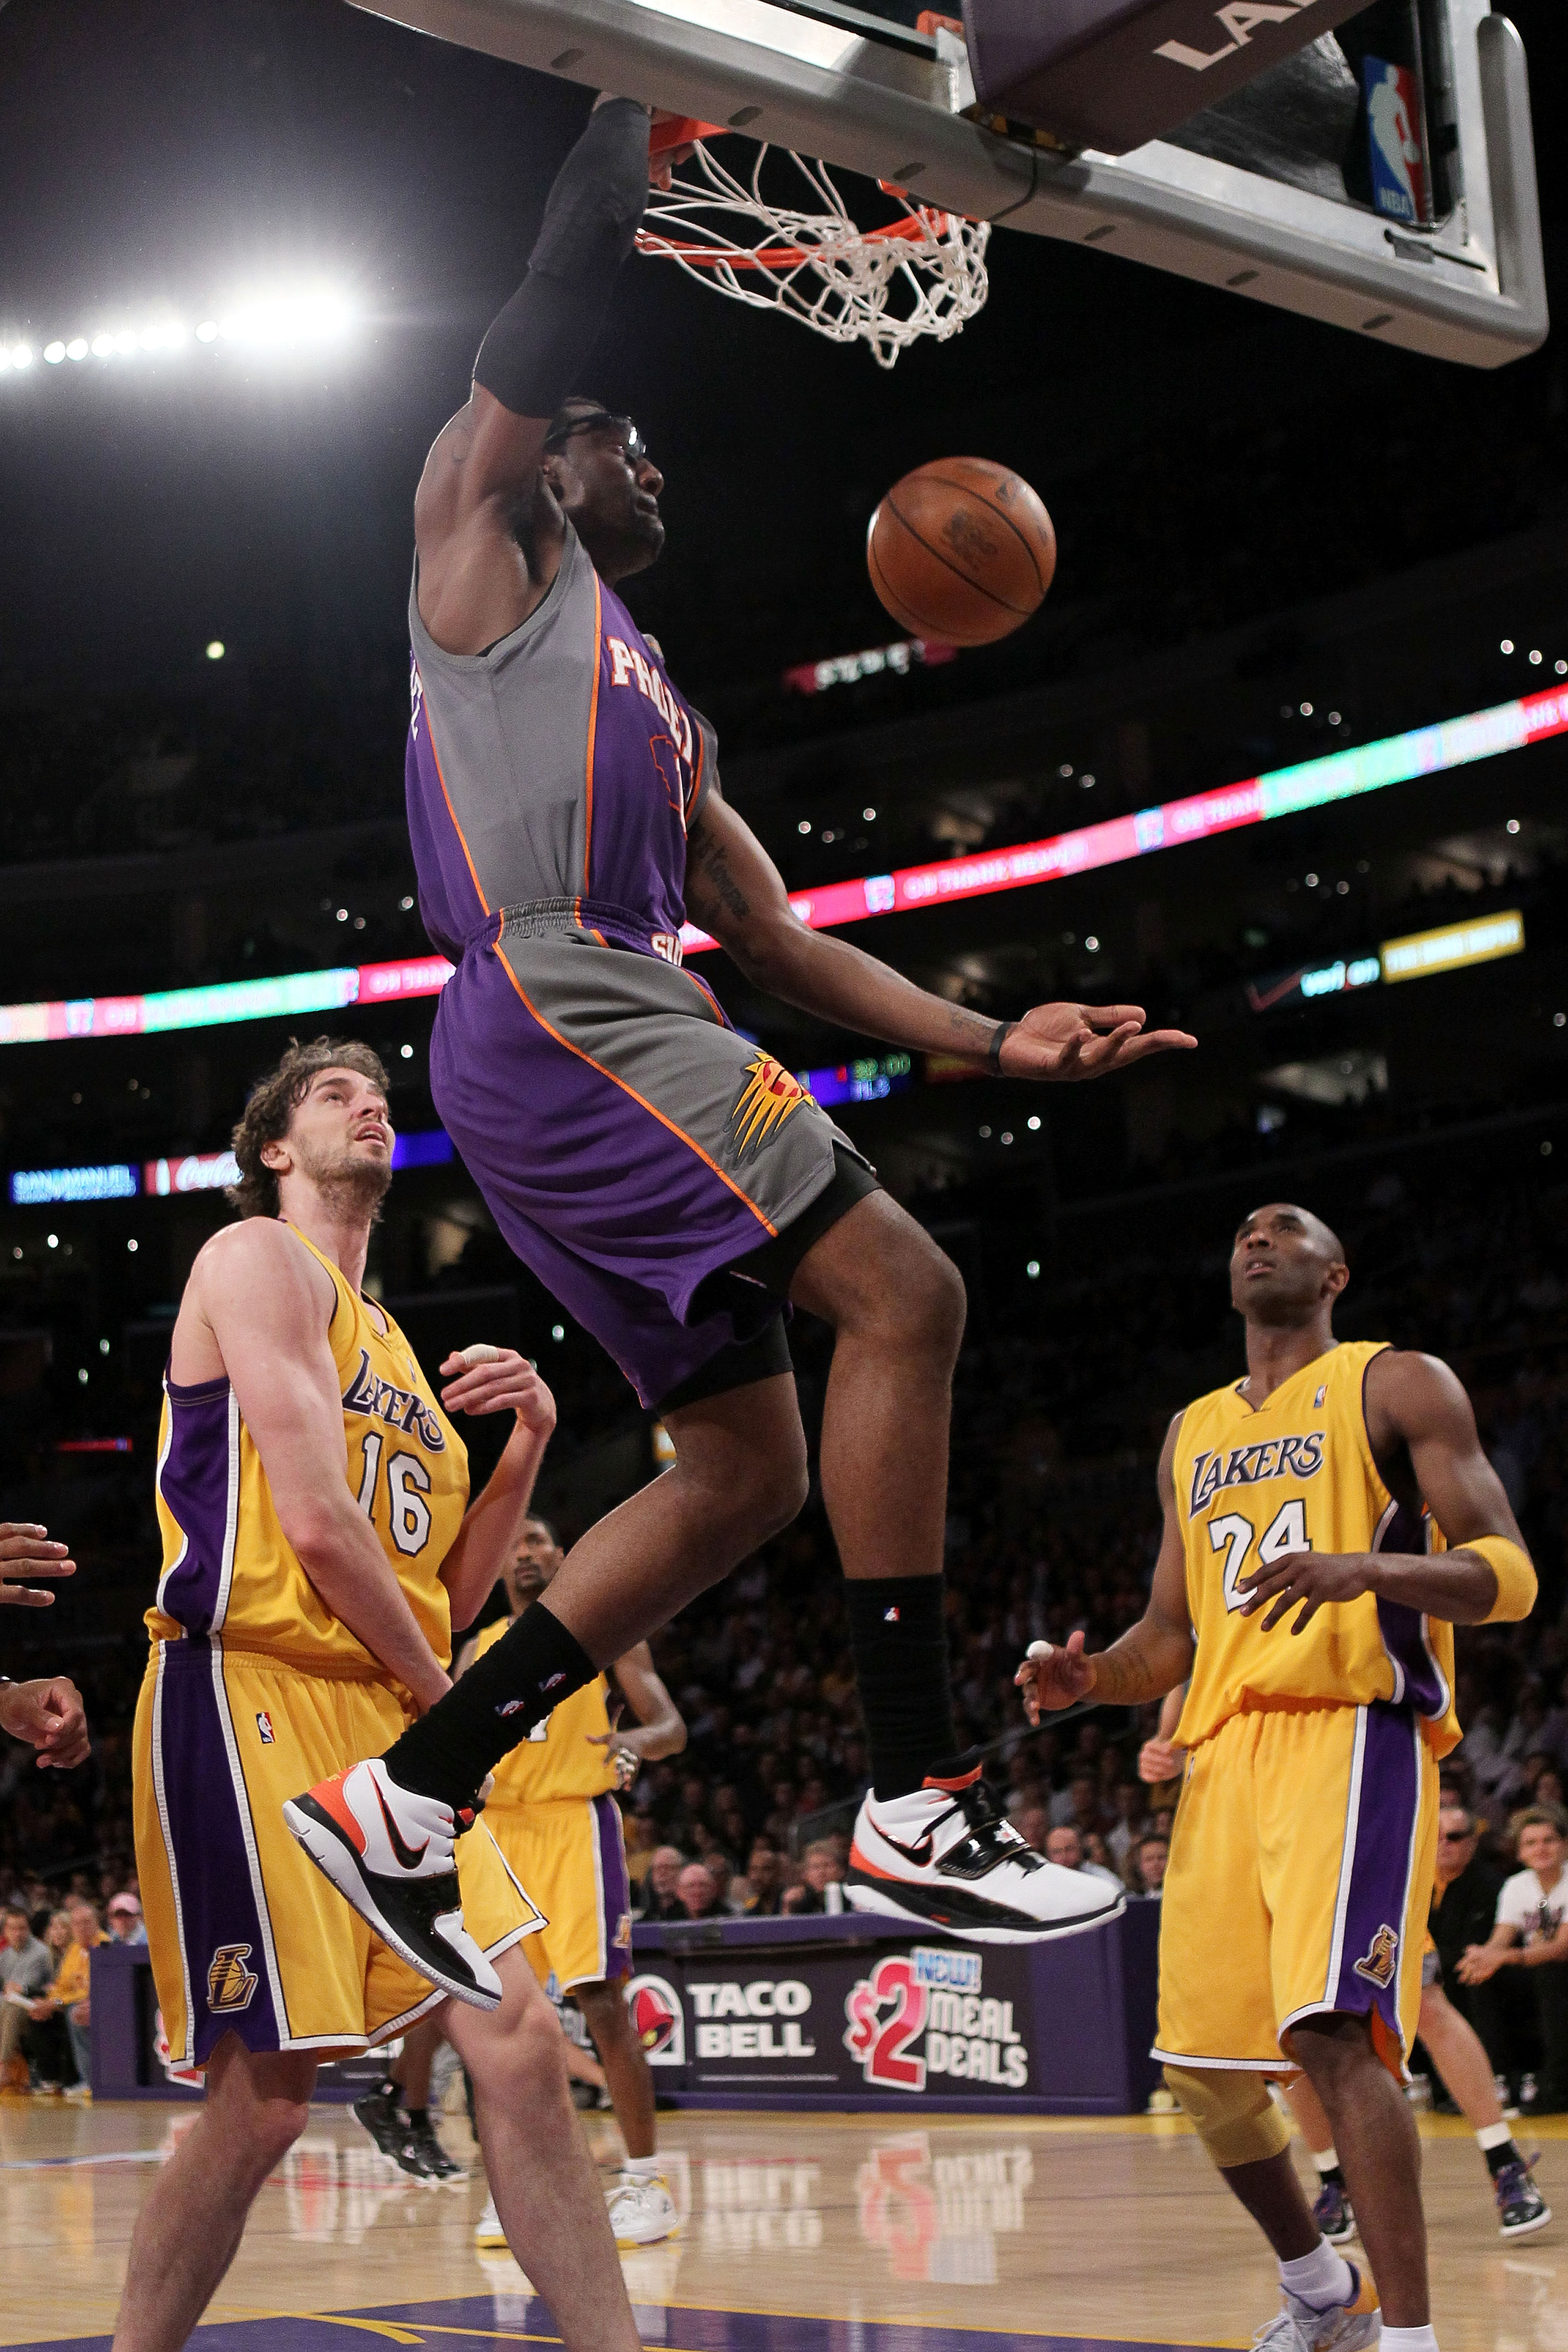 LOS ANGELES, CA - MAY 27:  Amar'e Stoudemire #1 of the Phoenix Suns dunks the ball against the Los Angeles Lakers in the first quarter of Game Five of the Western Conference Finals during the 2010 NBA Playoffs at Staples Center on May 27, 2010 in Los Ange